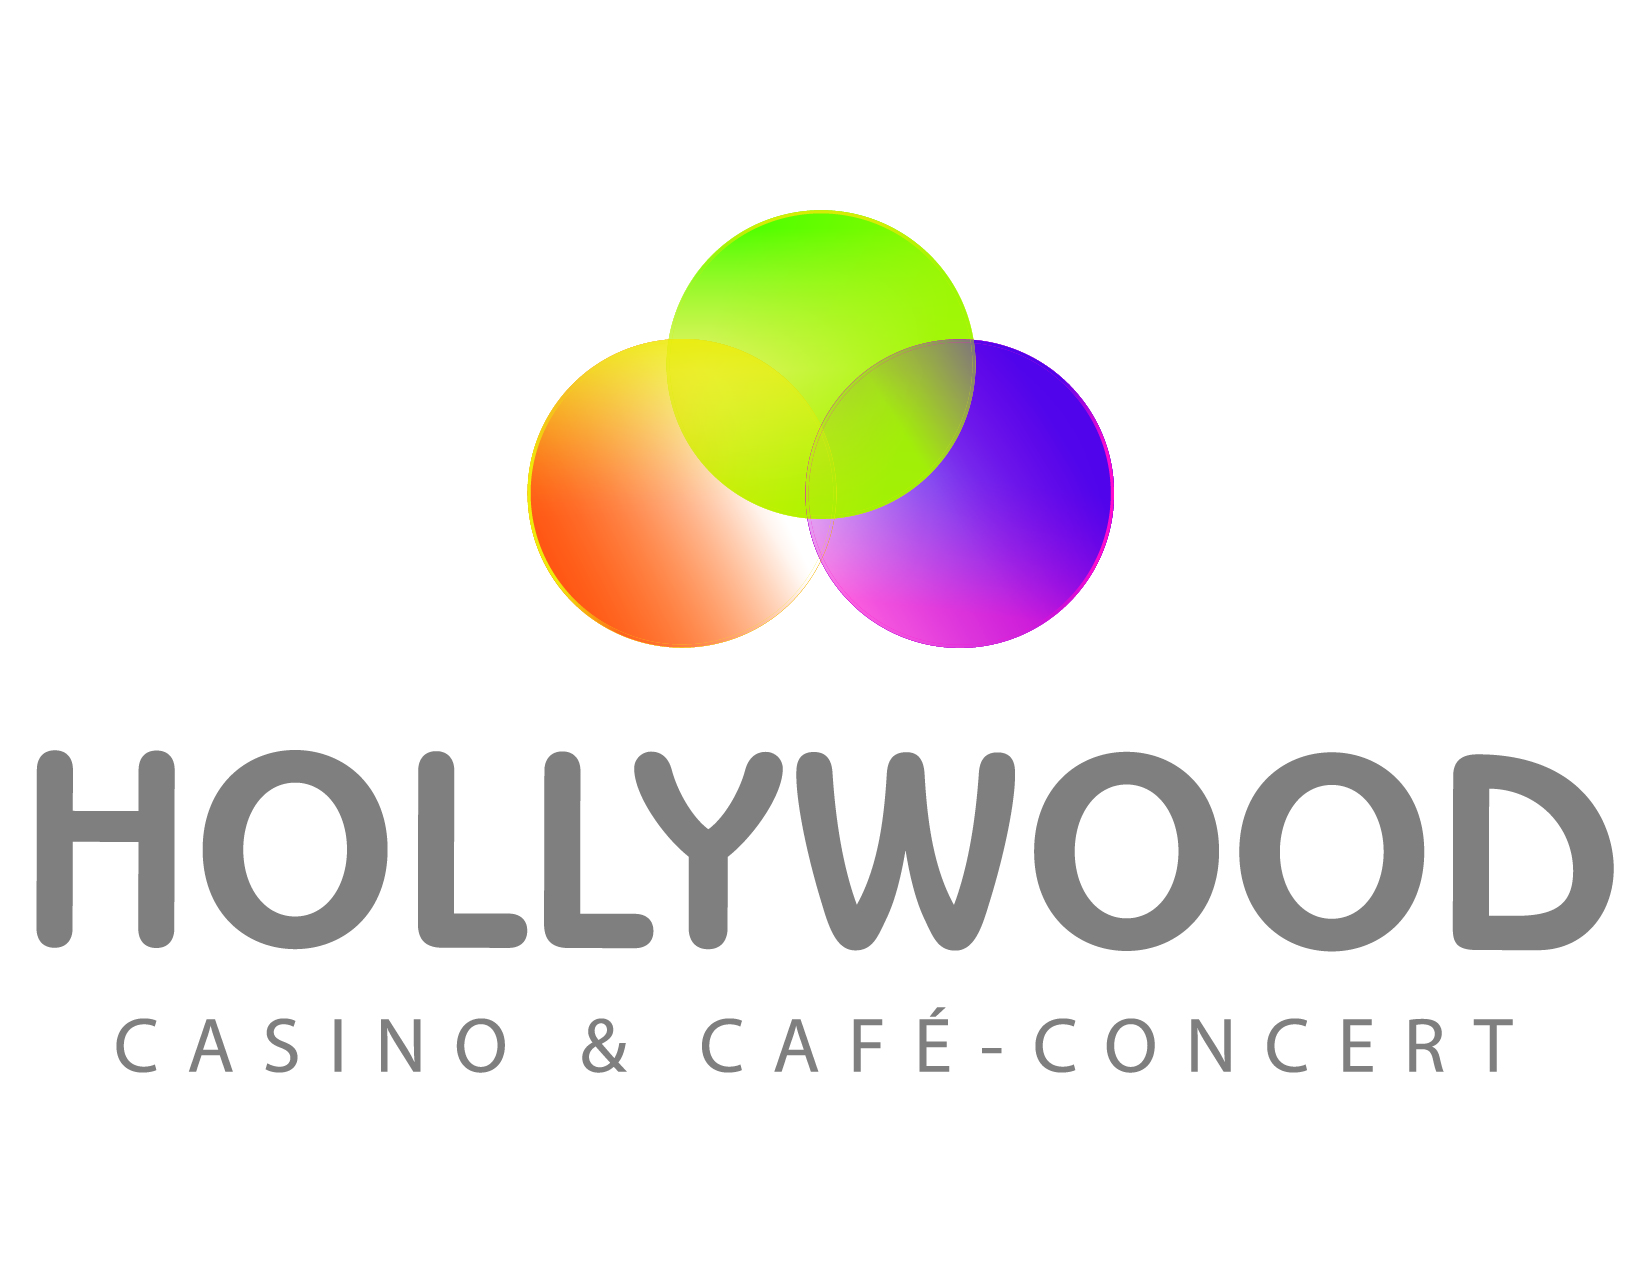 HOLLYWOOD CASINO - Guía Multimedia